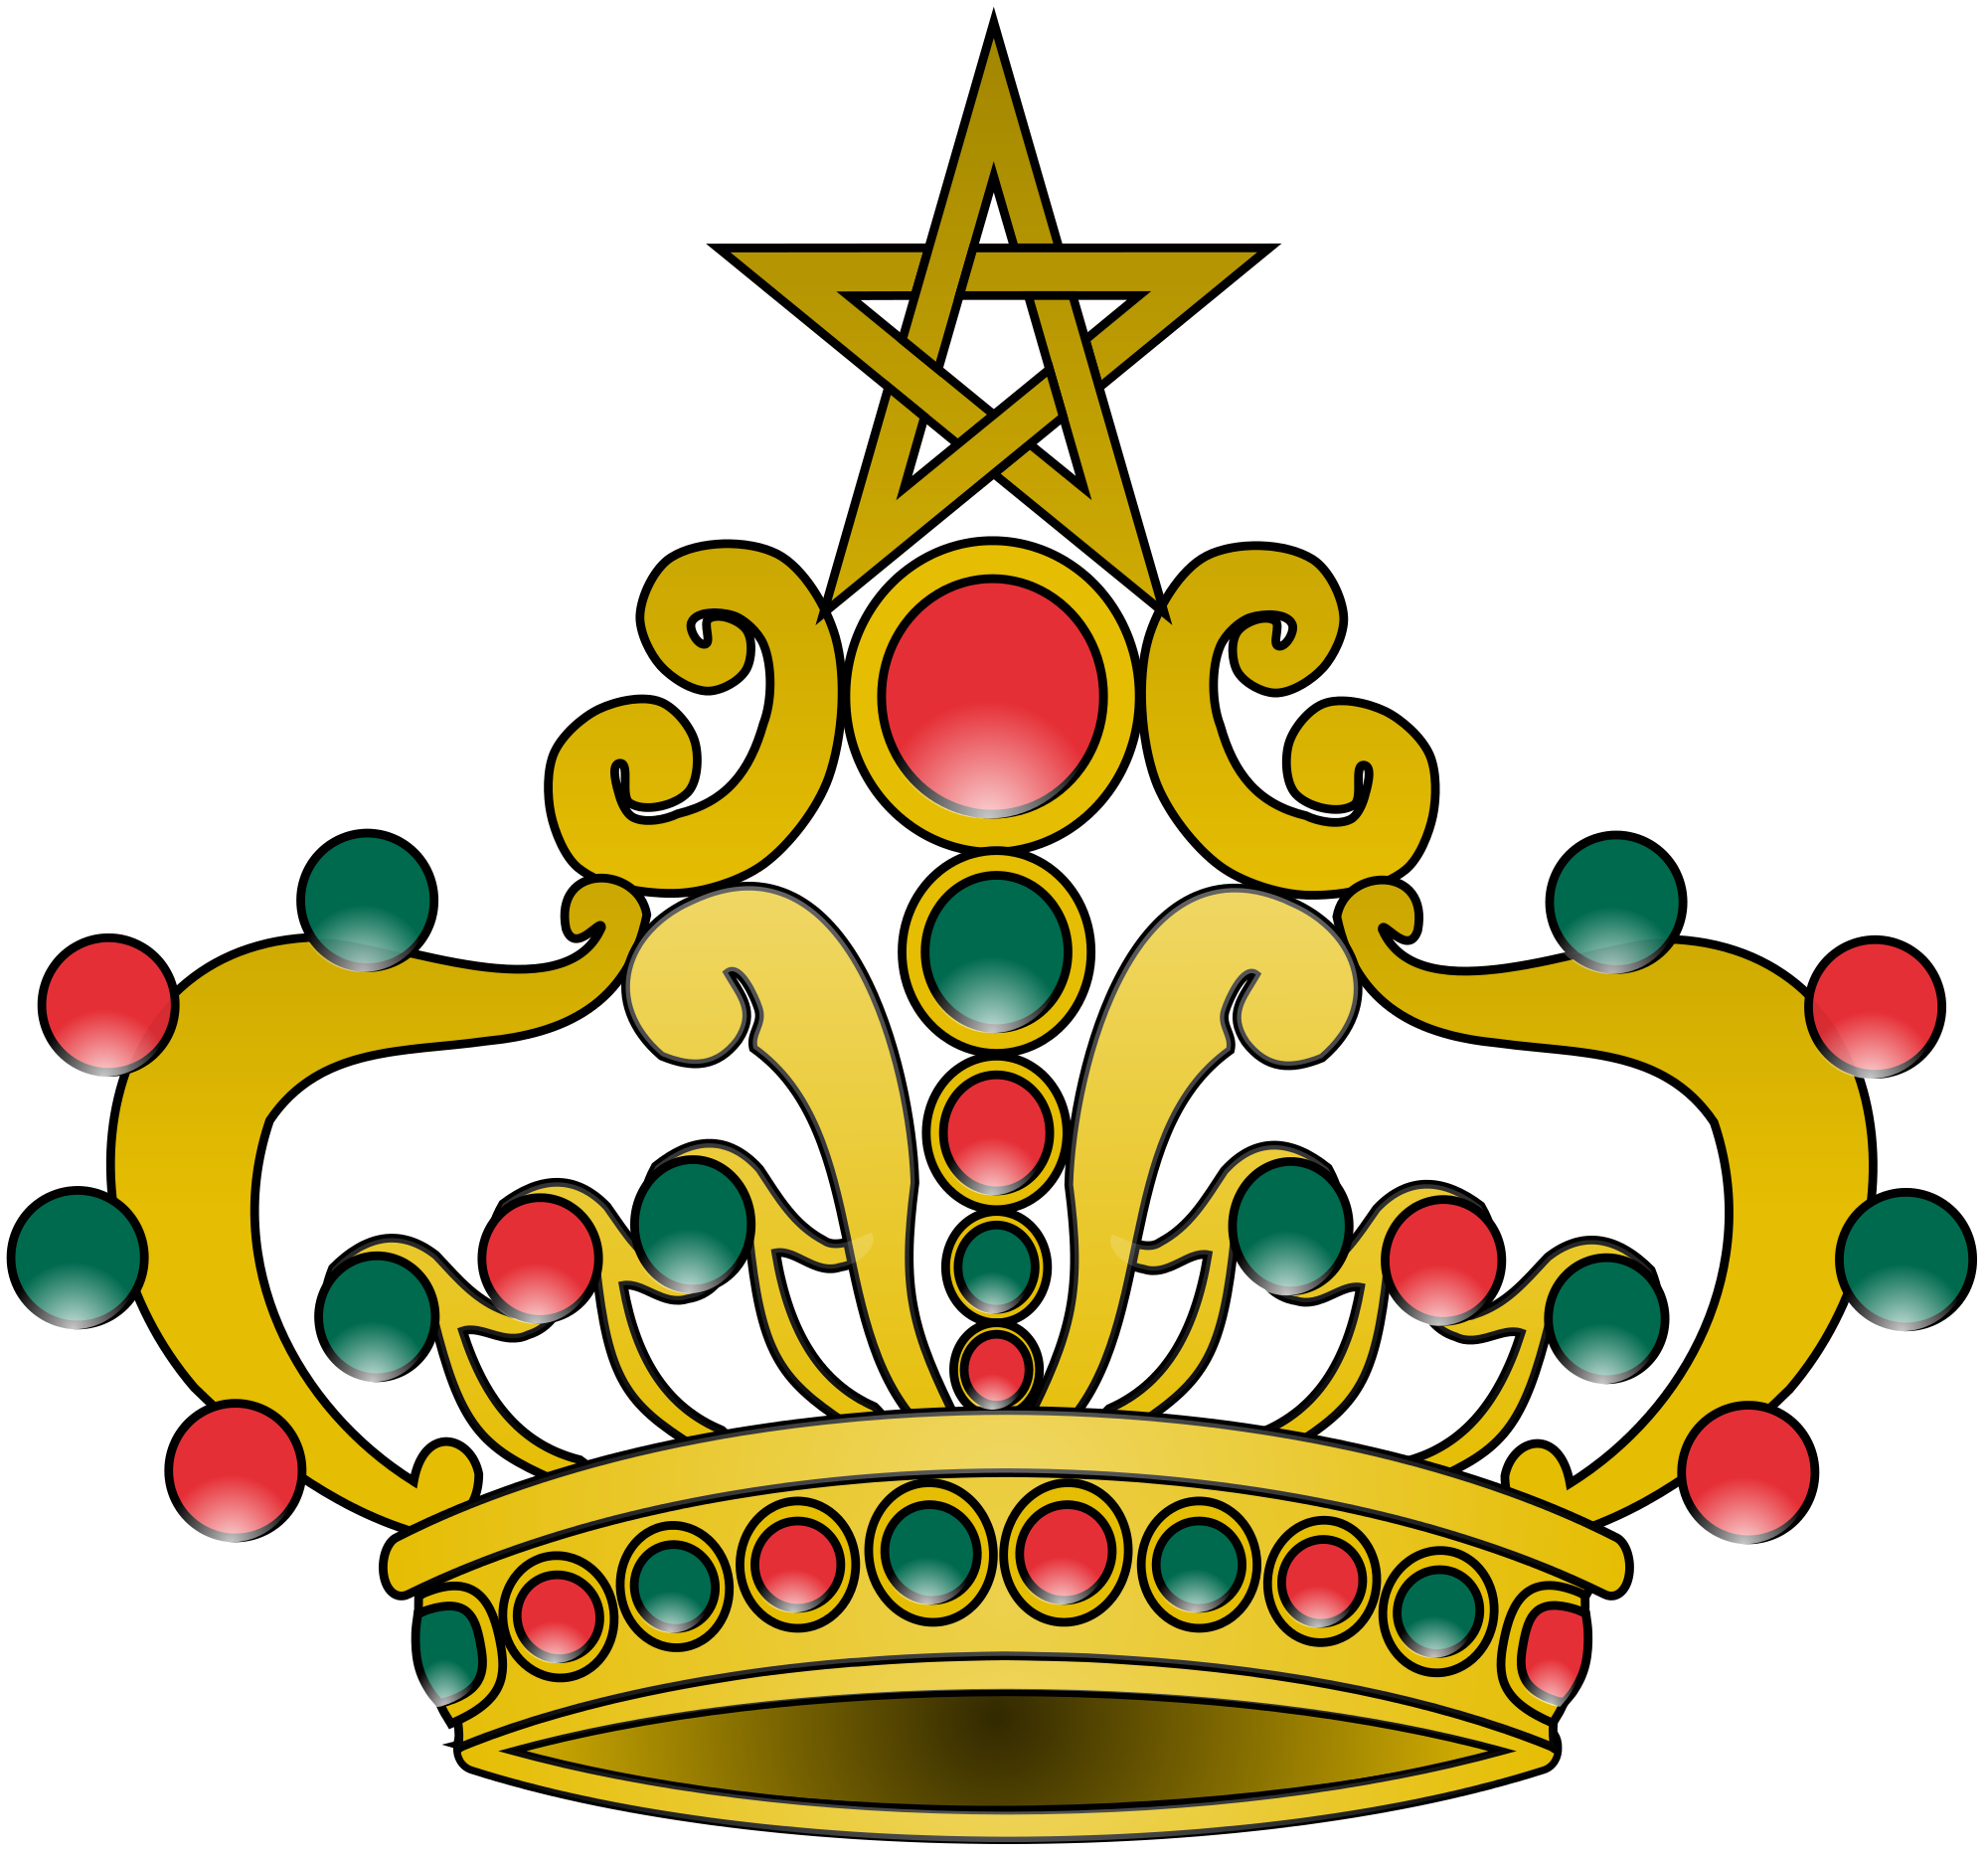 Number 1 clipart with crown freeuse download File:Crown of Morocco 1.svg - Wikimedia Commons freeuse download